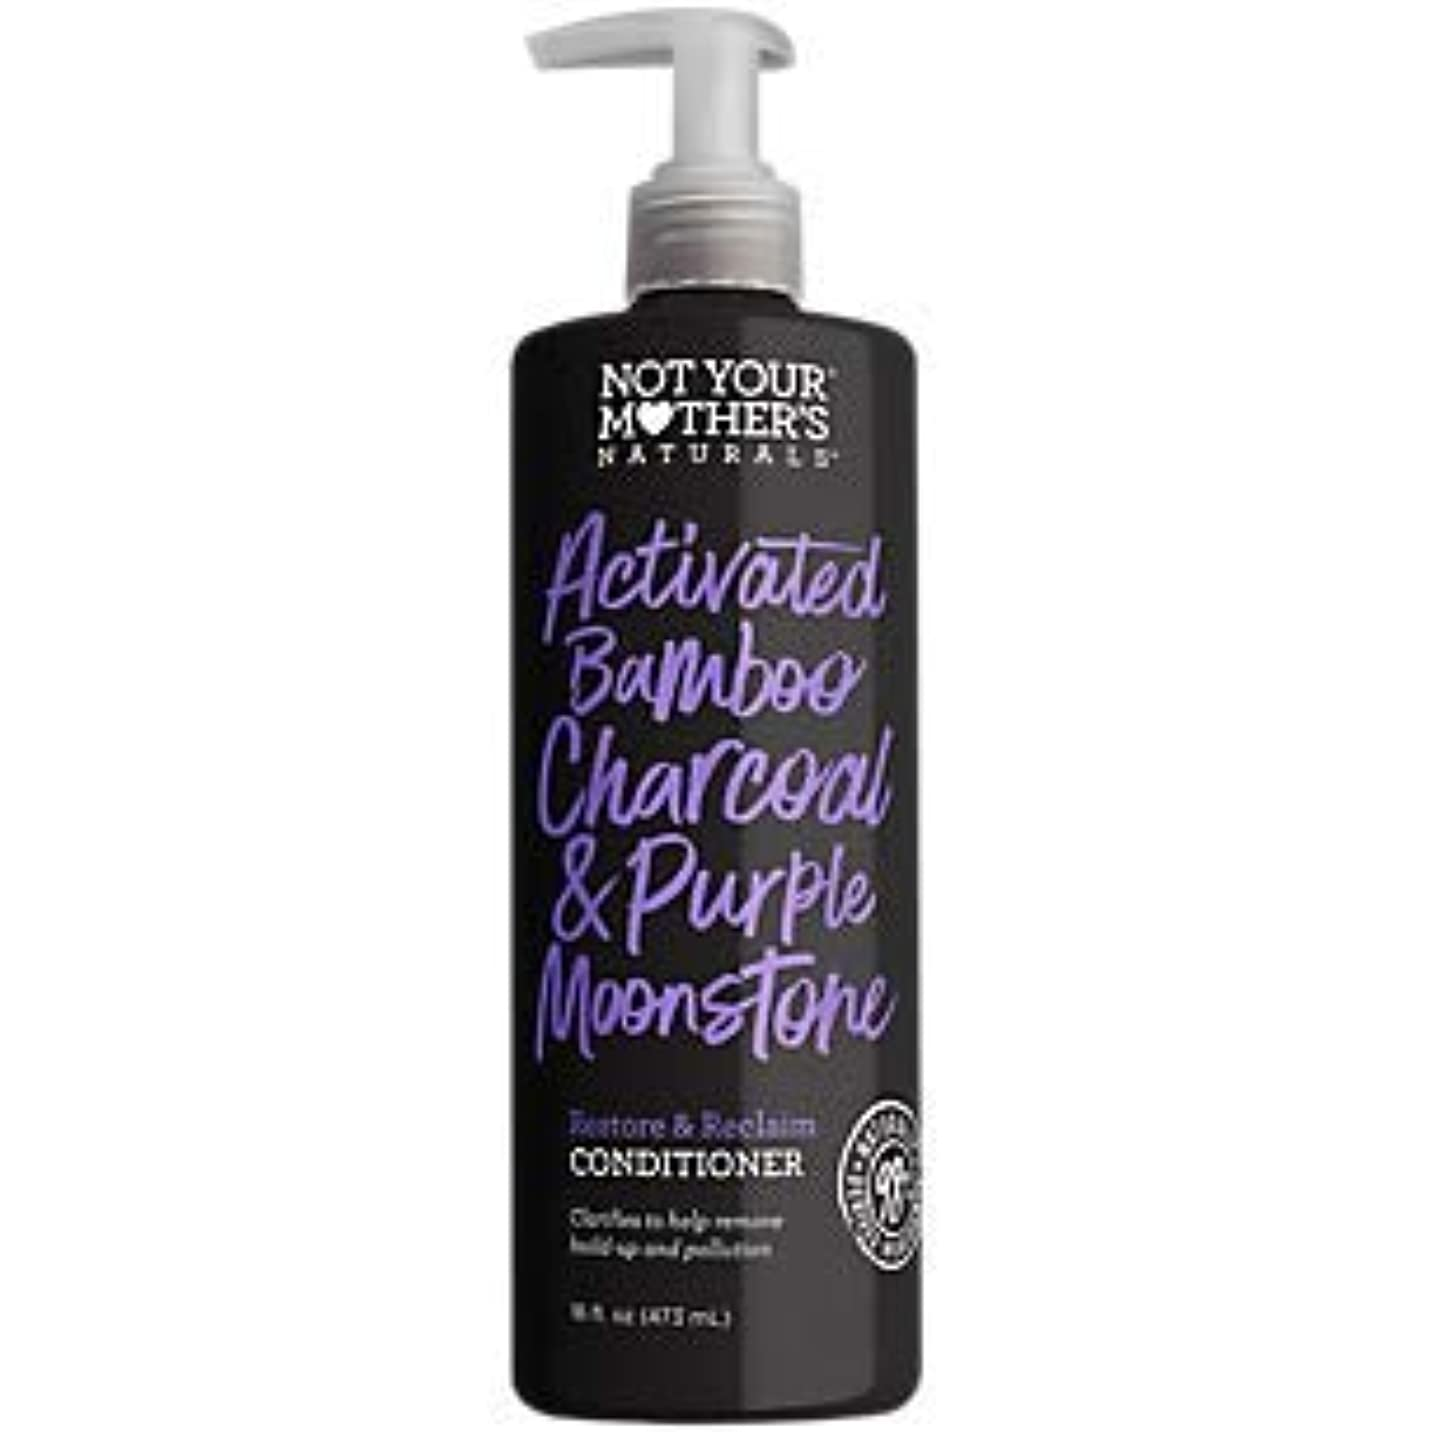 洞察力のあるカビクルーNOT YOUR MOTHER'S Activated Bamboo Charcoal & Purple Moonstone Conditioner, 16 FZ 141[並行輸入]